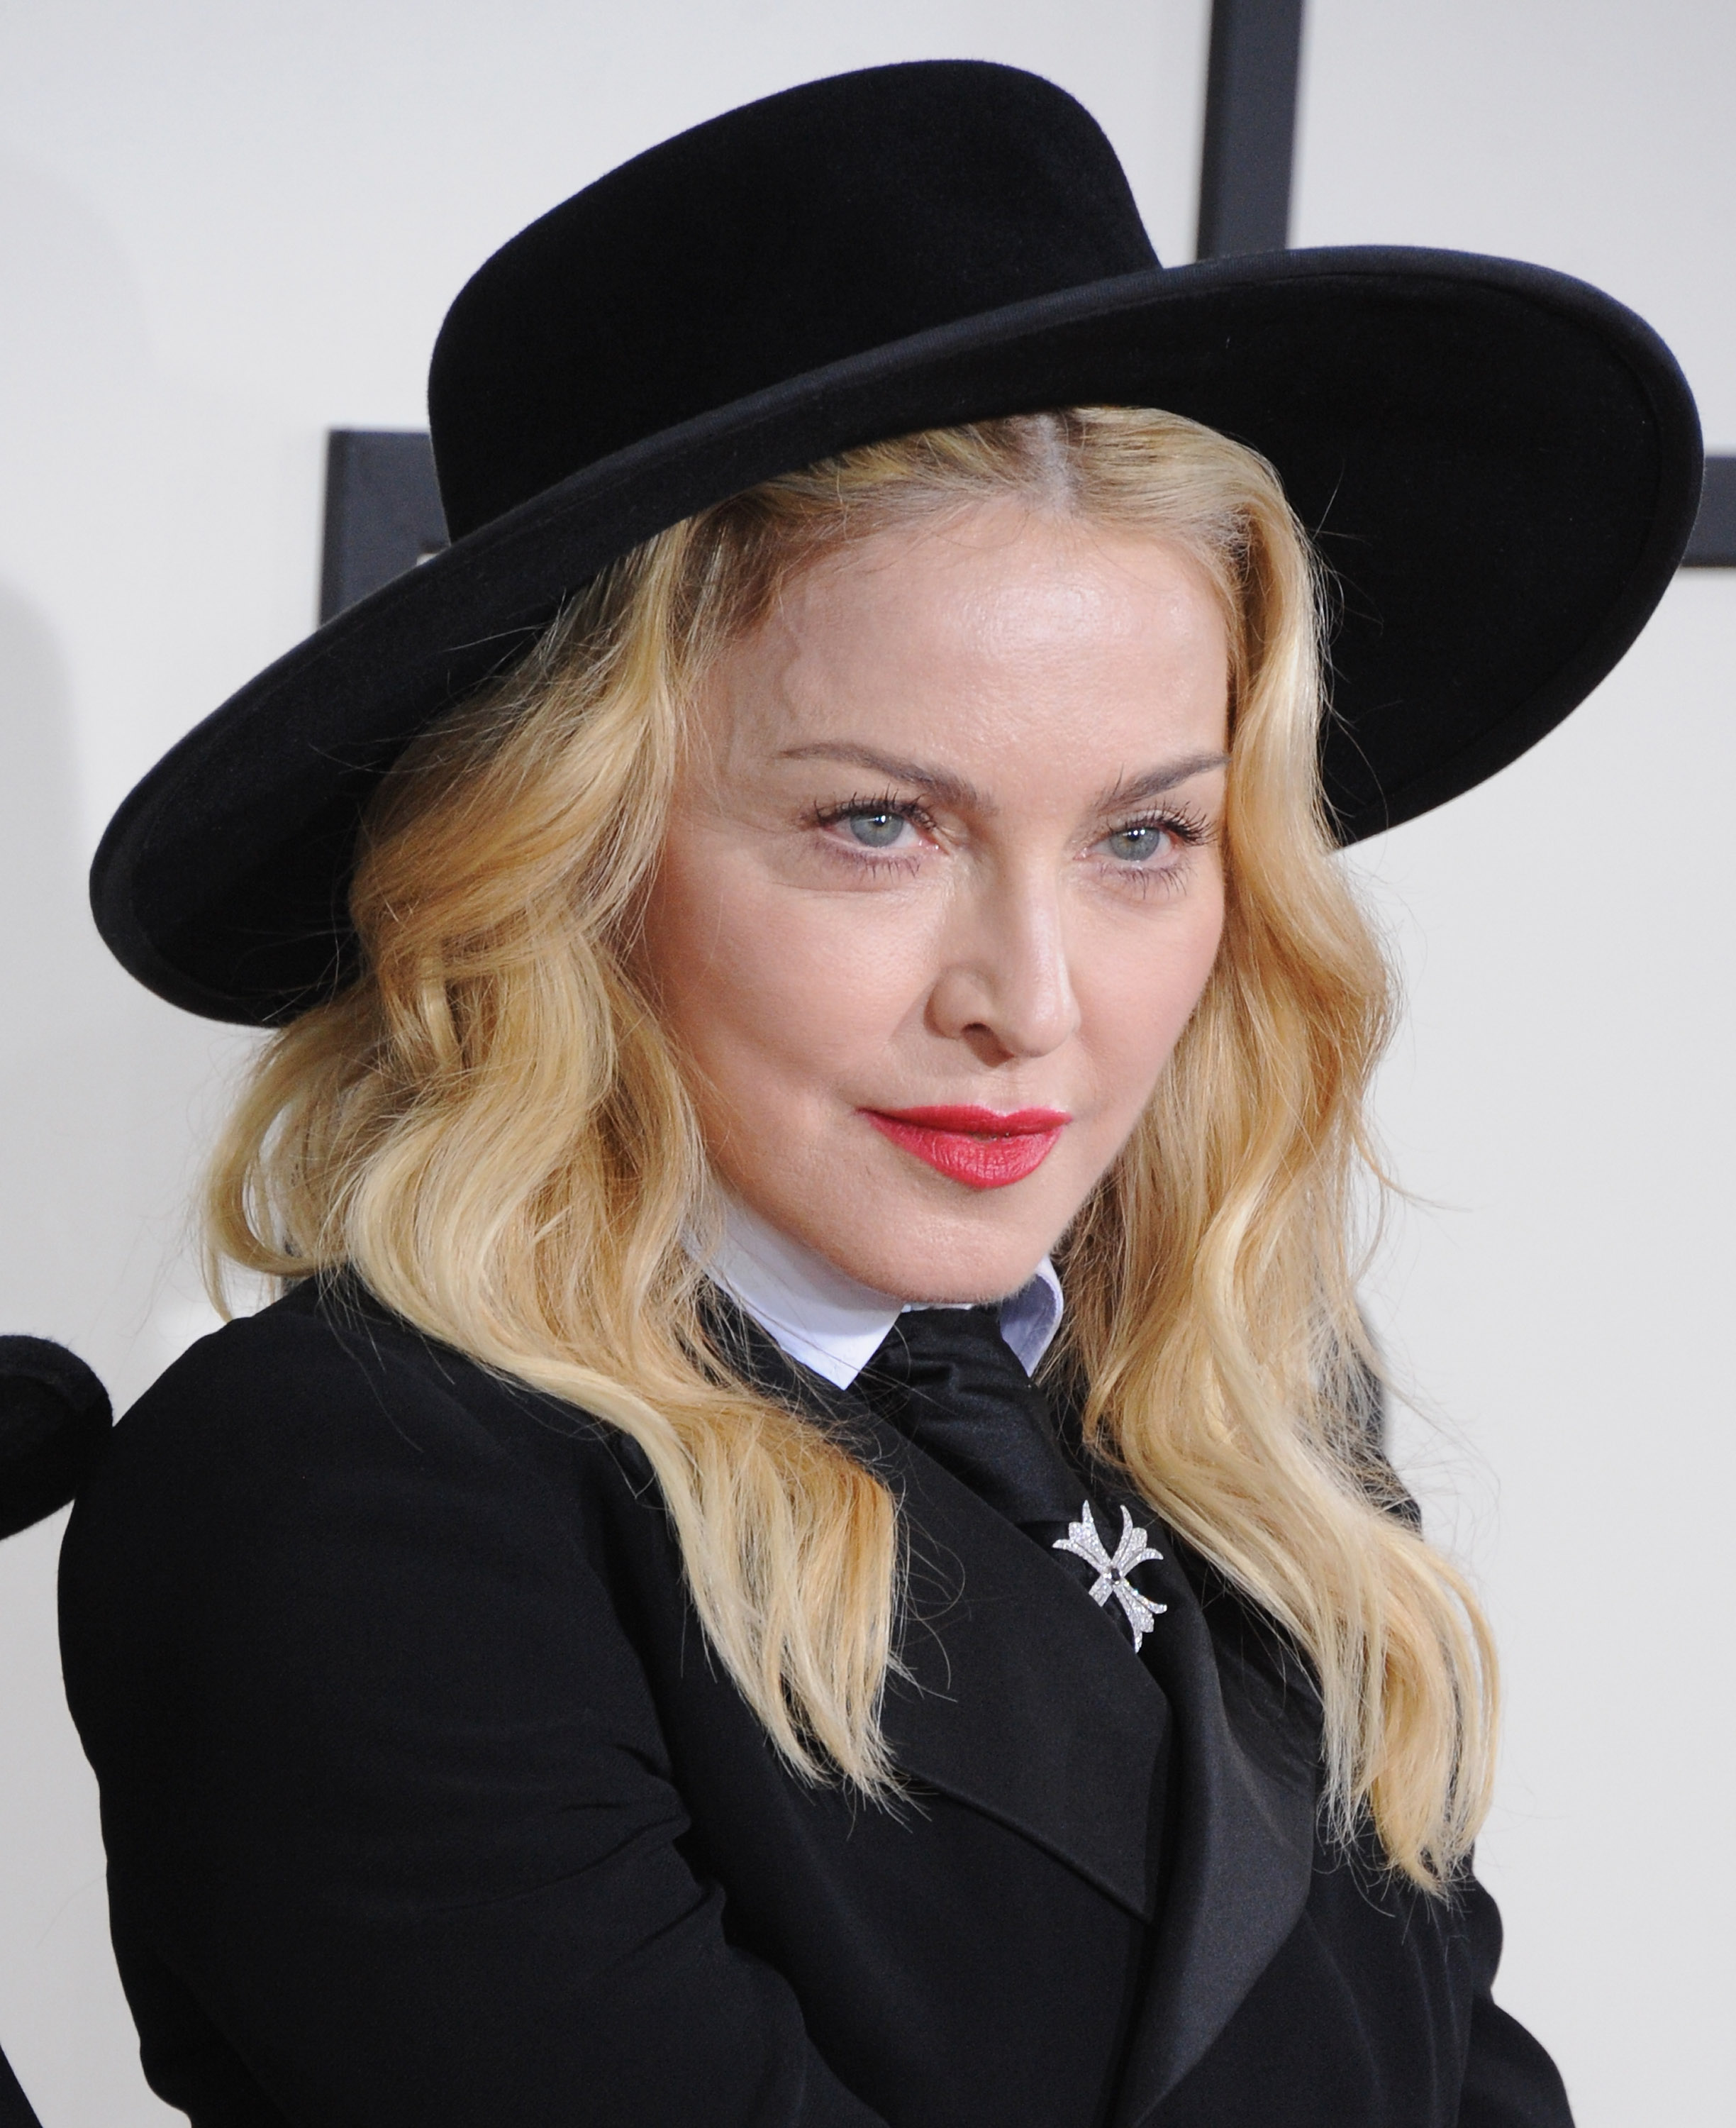 Singer Madonna arrives at the 56th GRAMMY Awards at Staples Center on January 26, 2014 in Los Angeles.